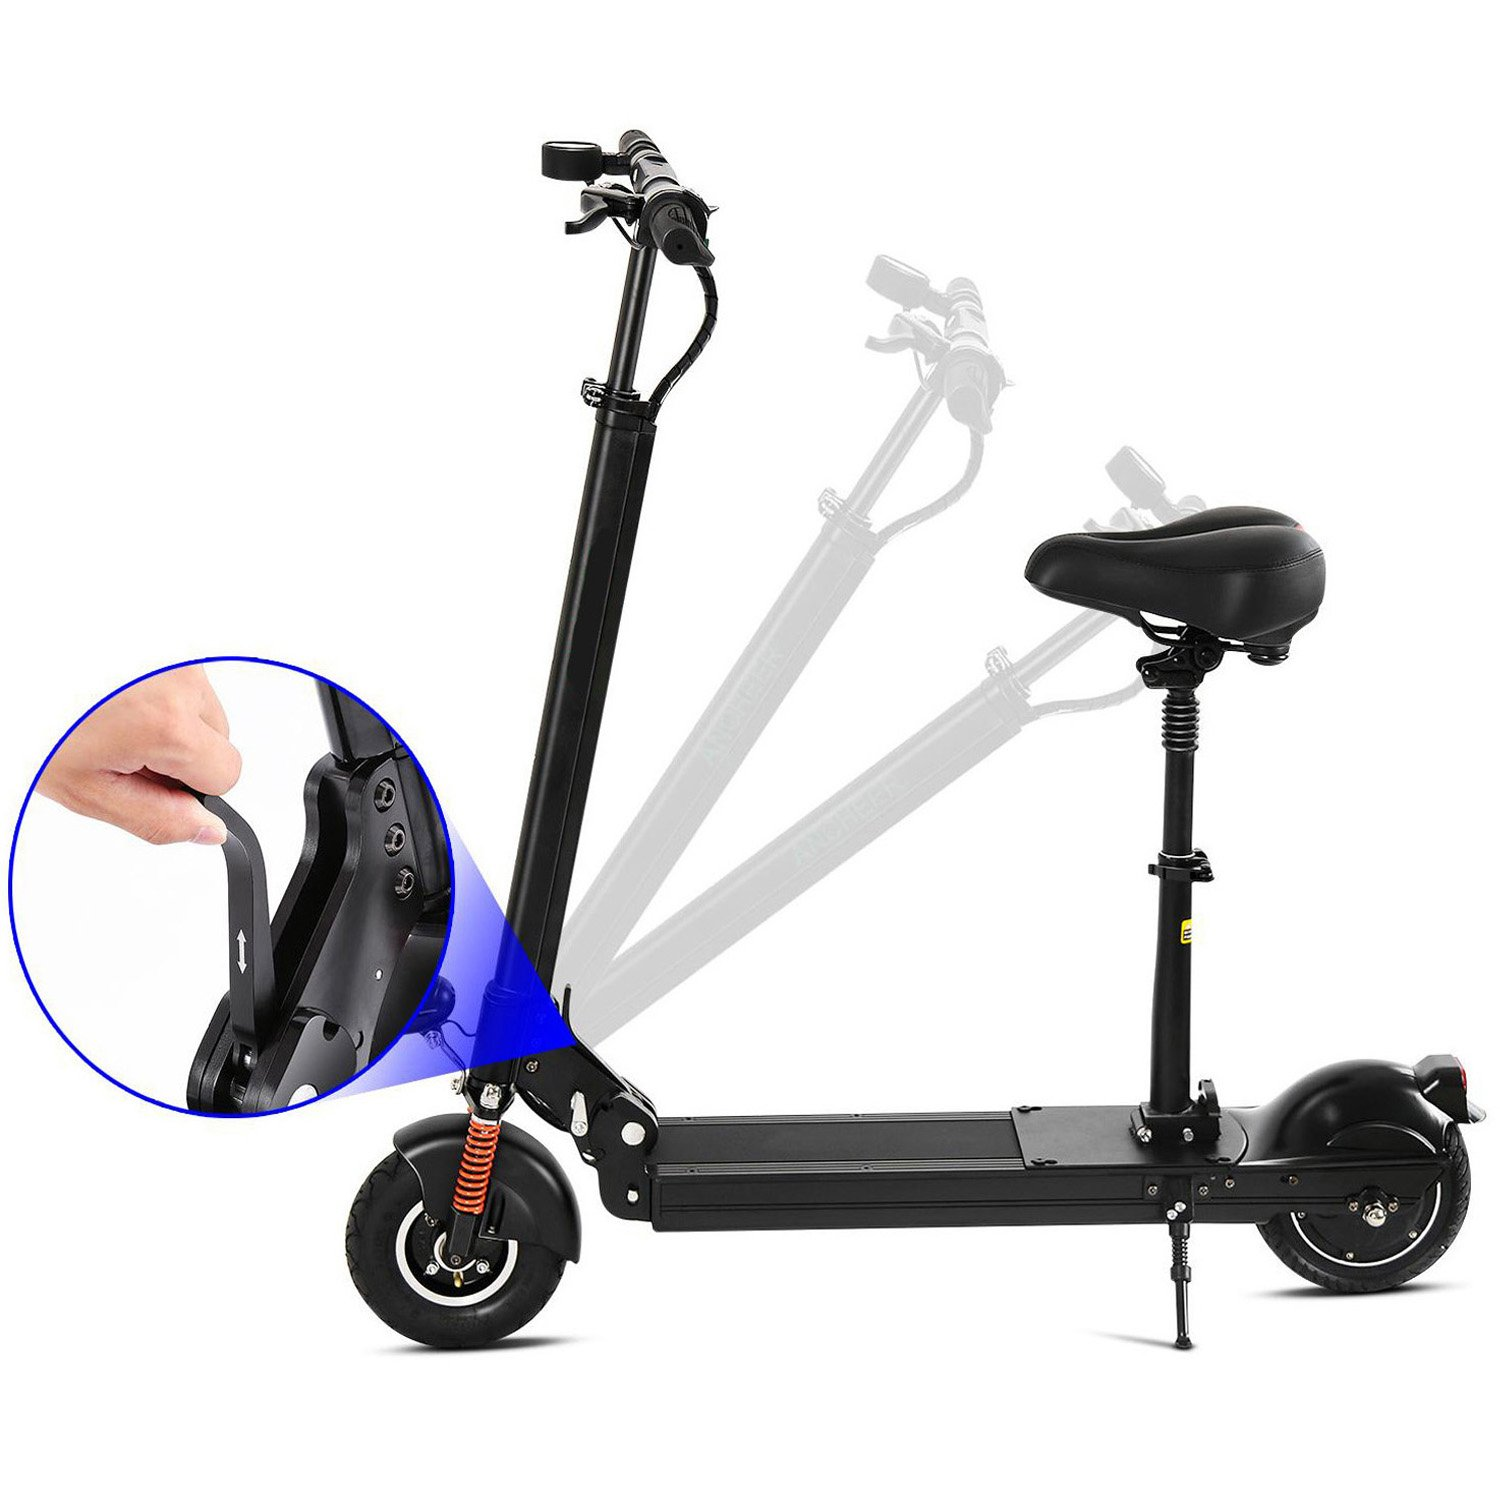 Electric Scooter with Retractable Seat, Easy Fold-n-Carry Design Kick Scooter with Li-Ion Battery and Headlight Taillight for Adults Teens (US STOCK)